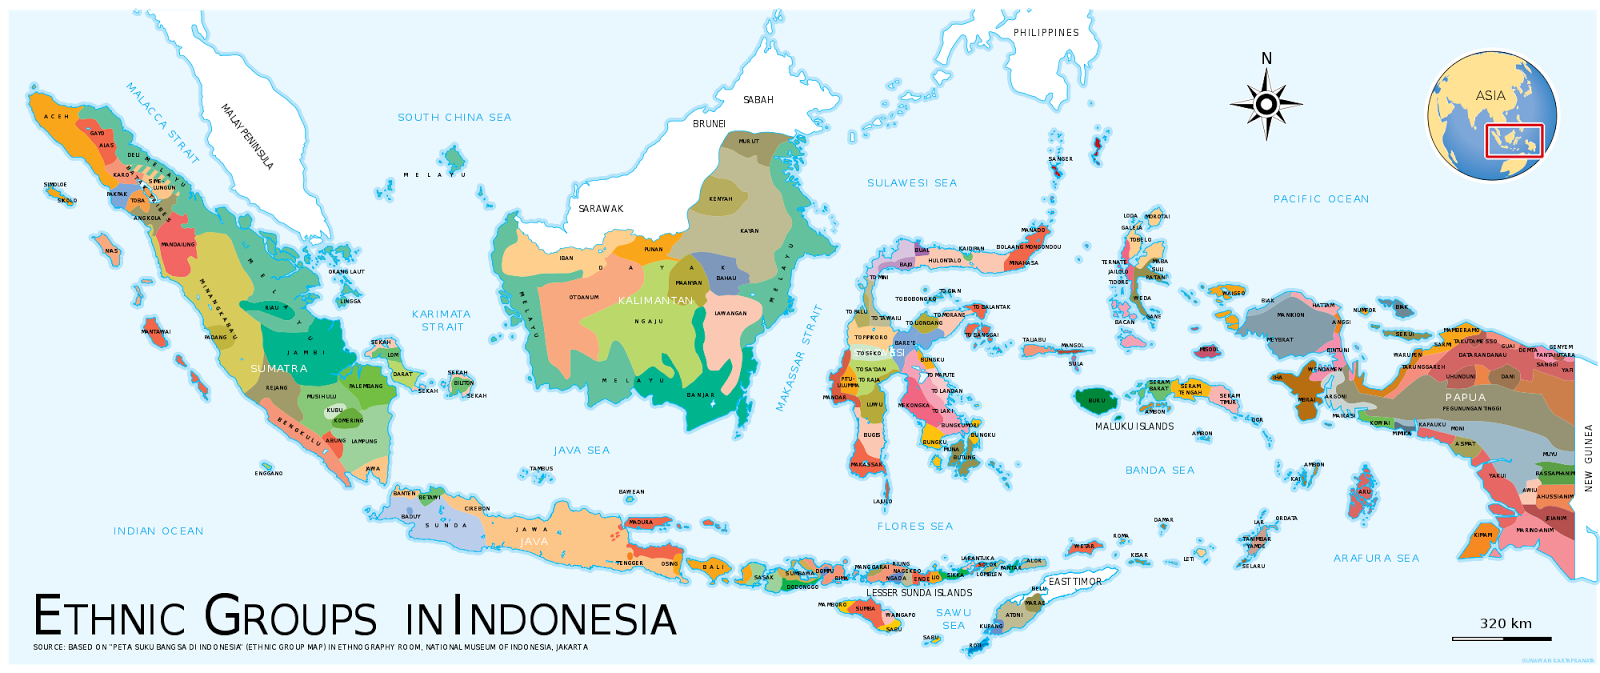 Ethnic groups in Indonesia